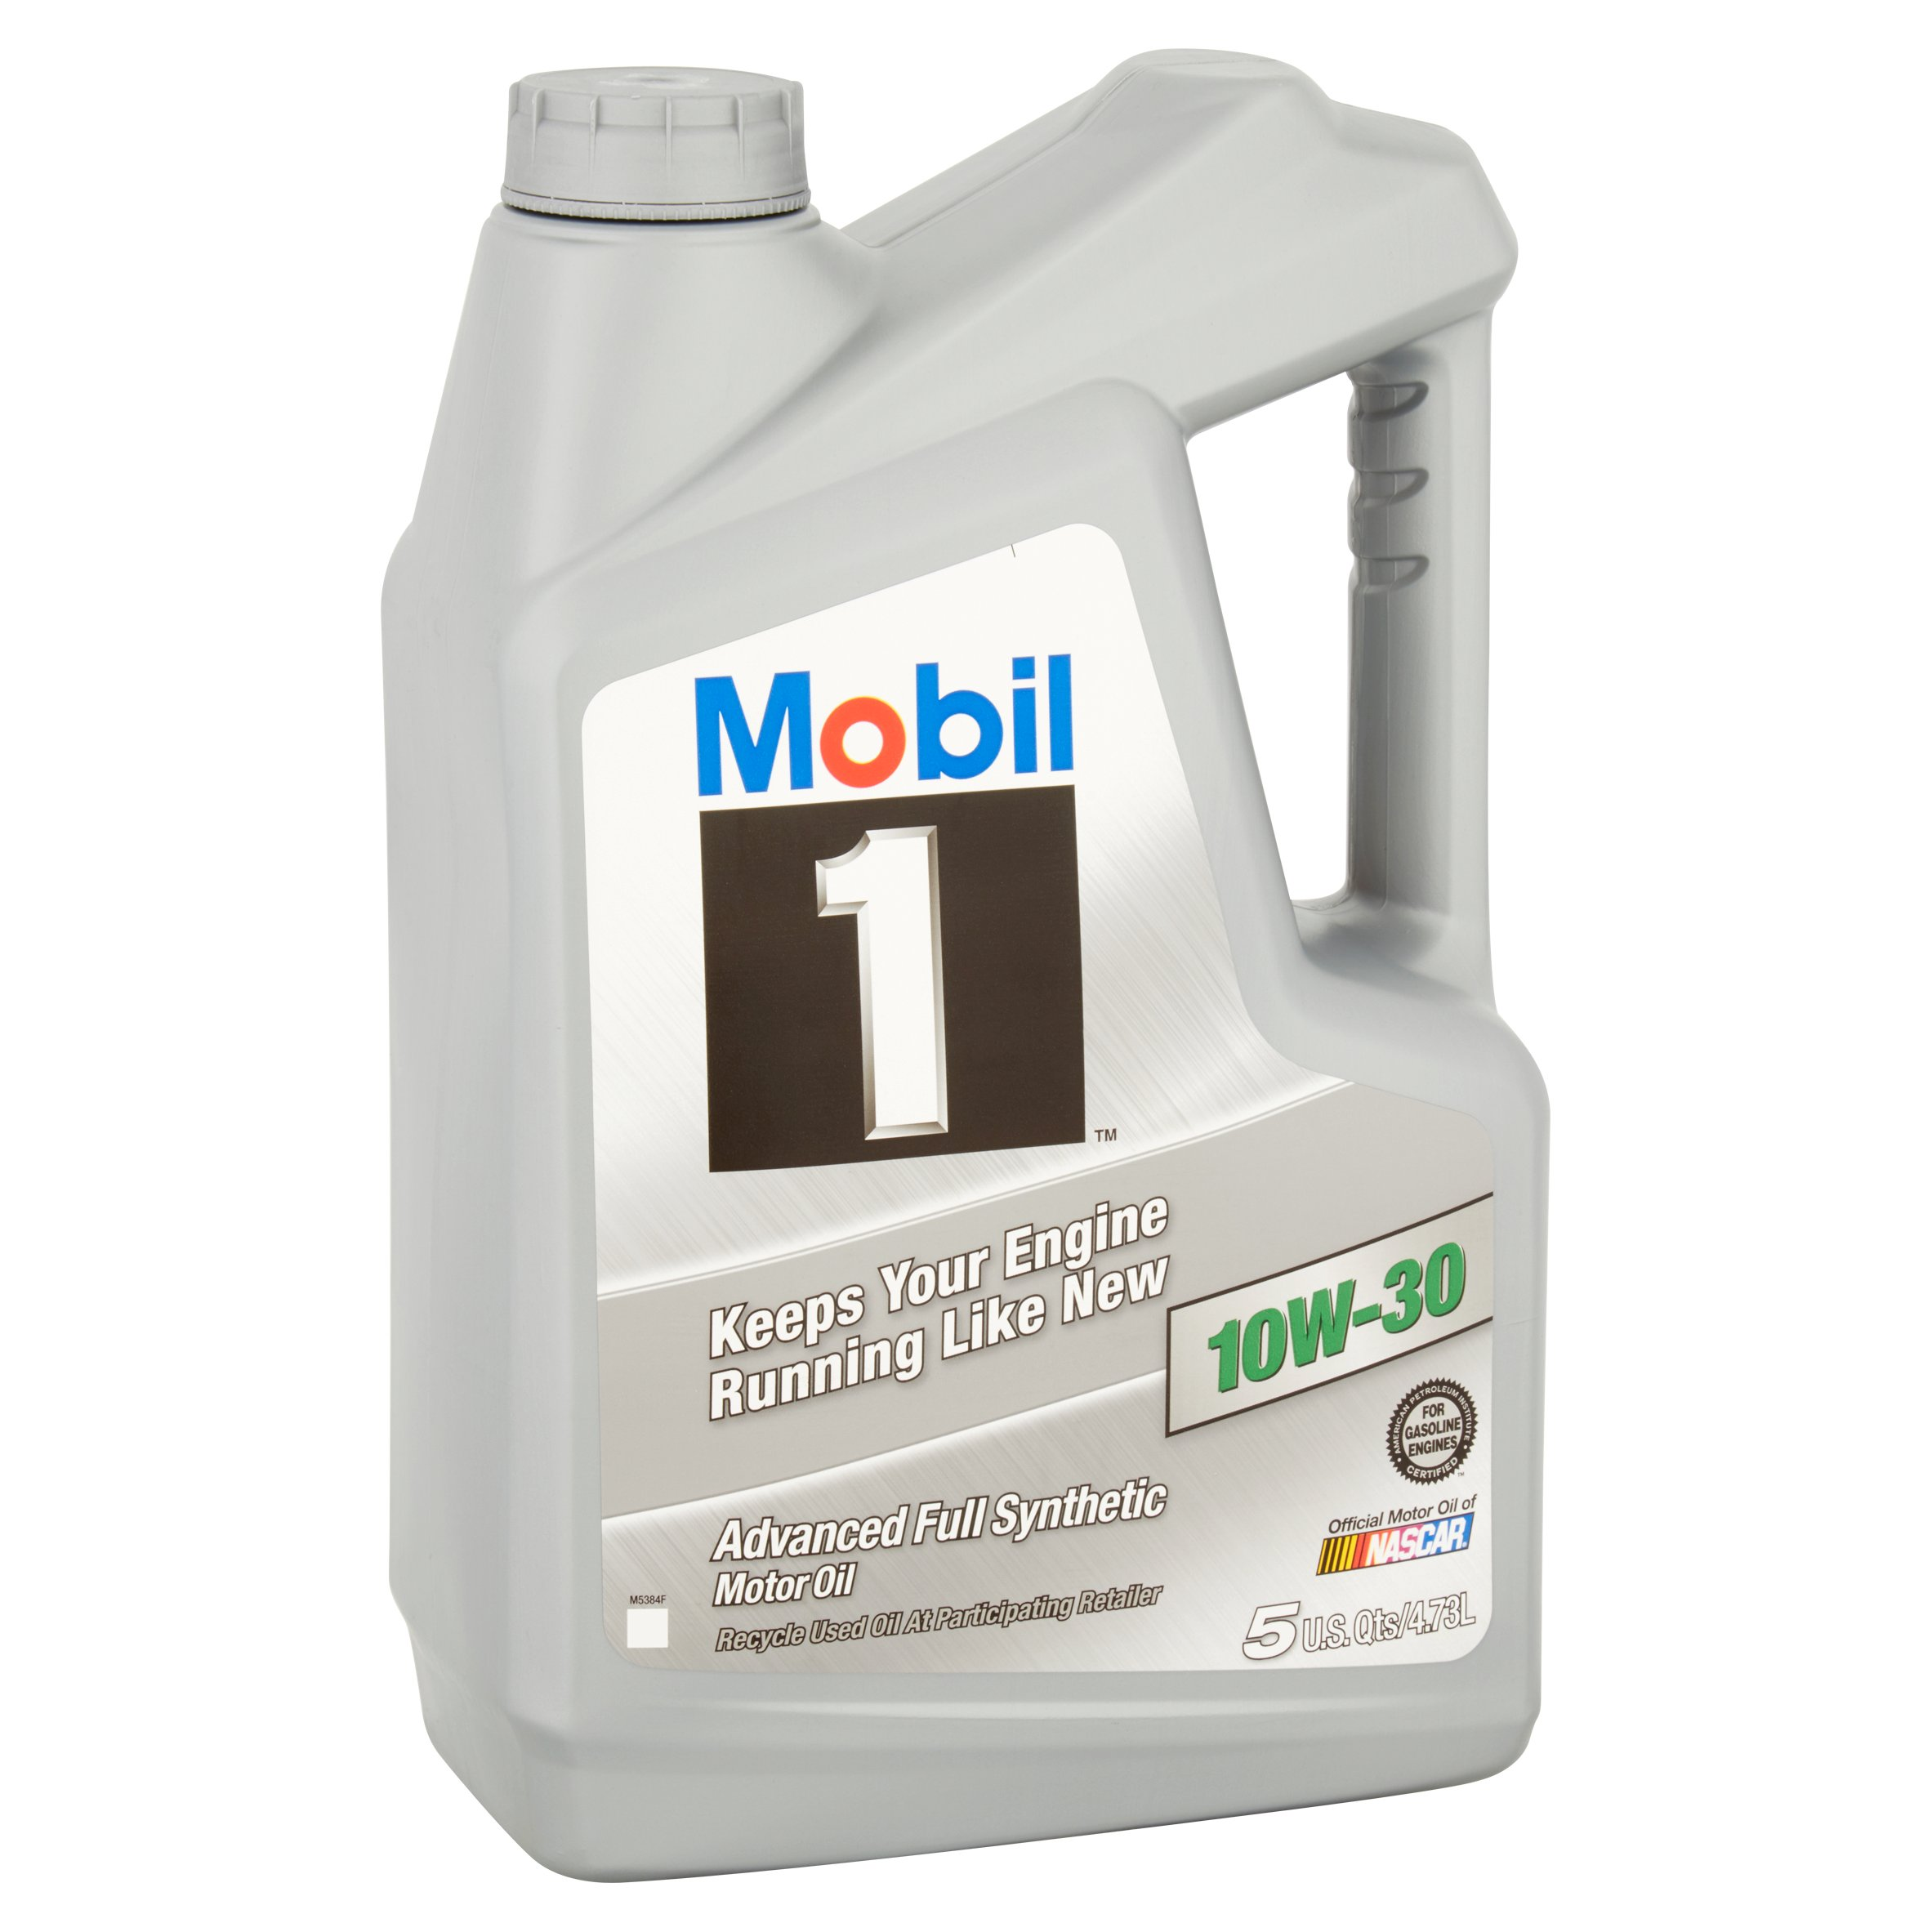 Mobil 1 10W 30 Advanced Full Synthetic Motor Oil 5 qts Walmart